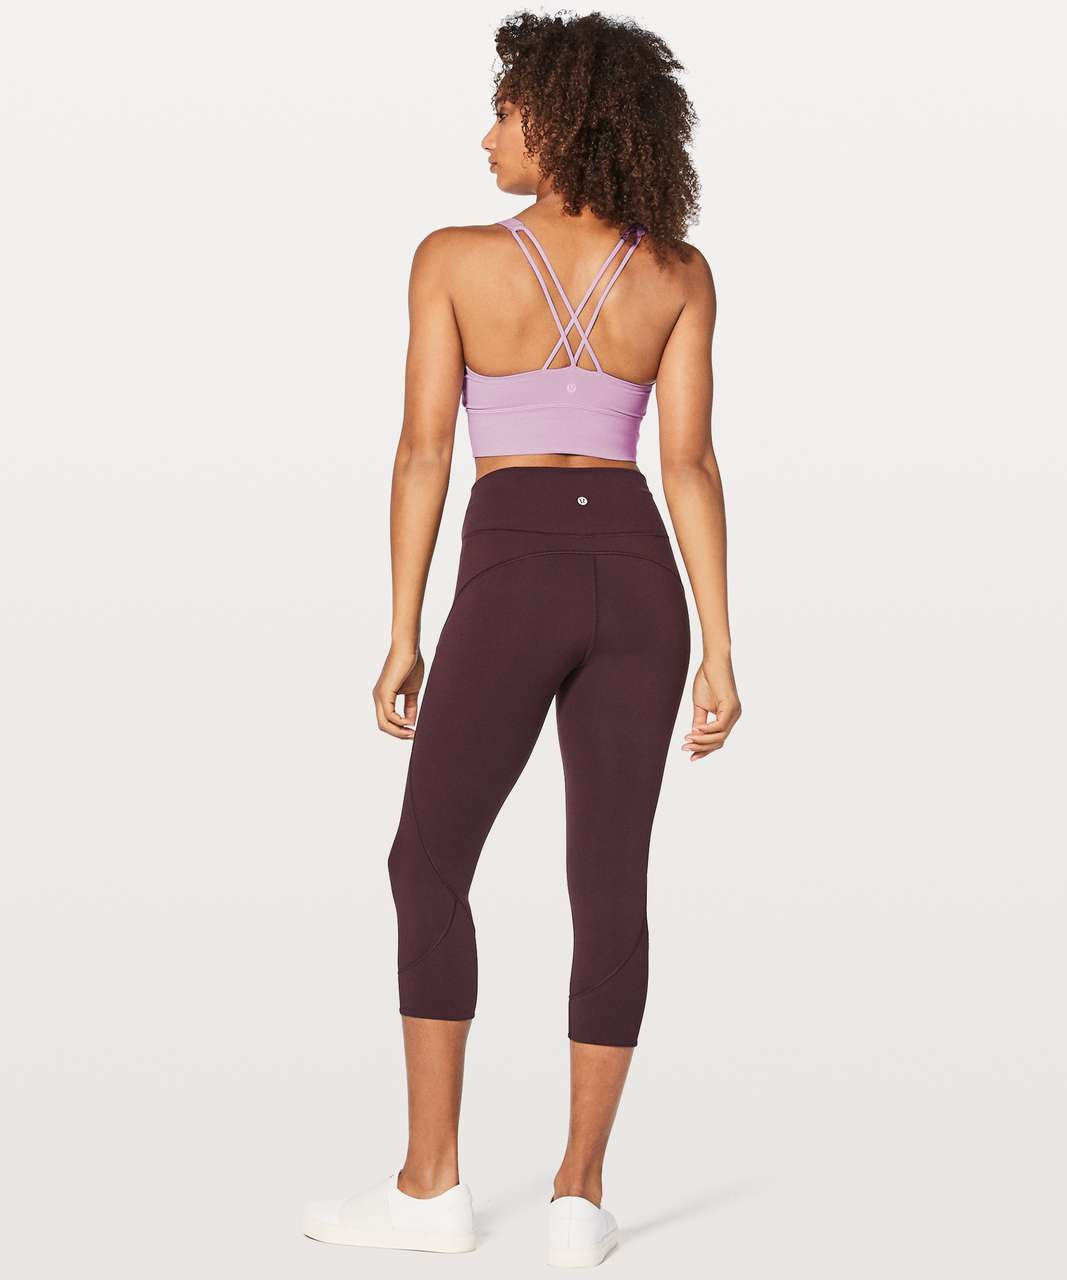 Lululemon Free To Be Bra Long Line - Lilac Quartz